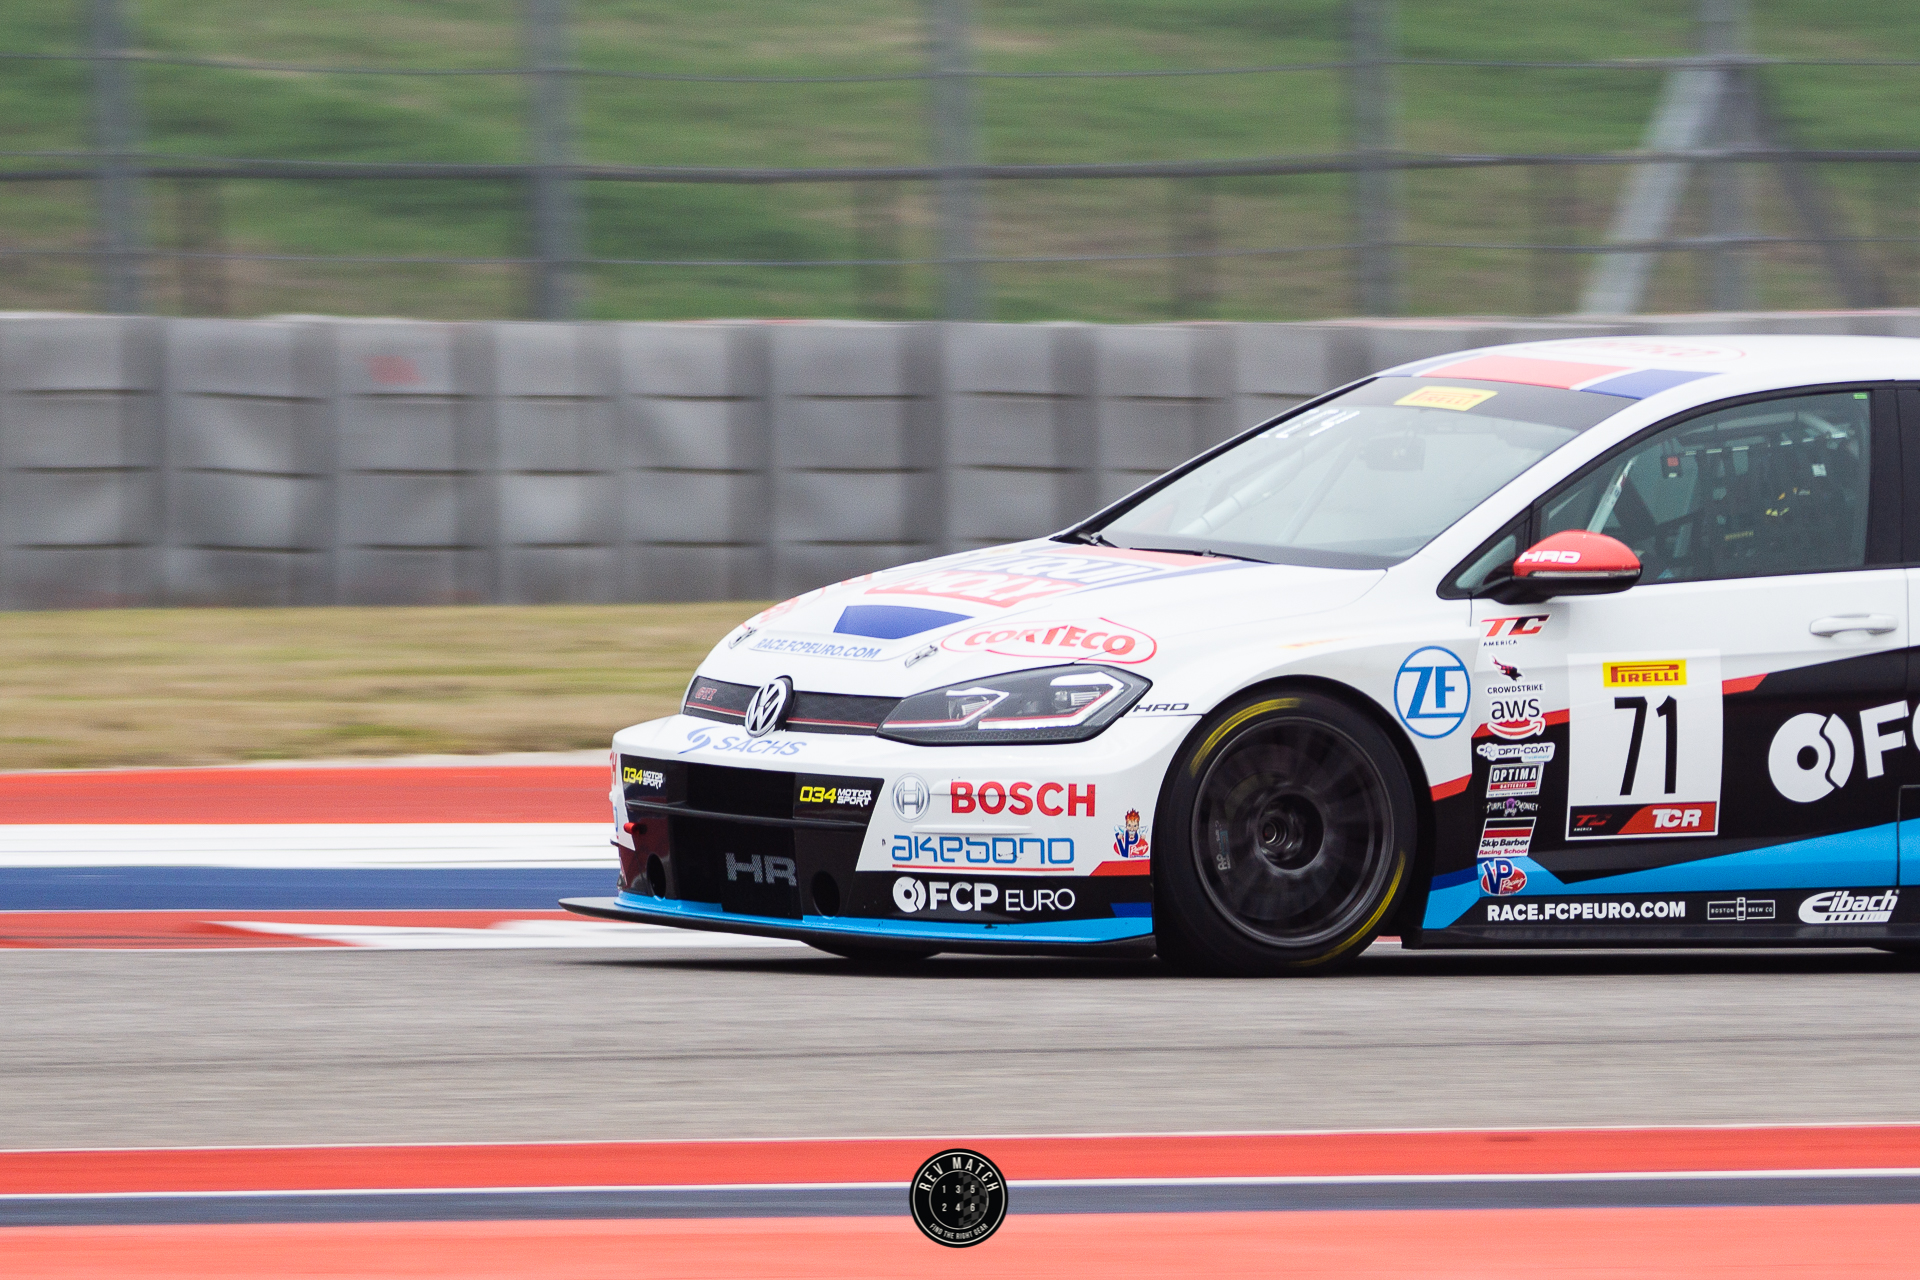 Blancpain GT COTA 2019 Rev Match Media-109.jpg